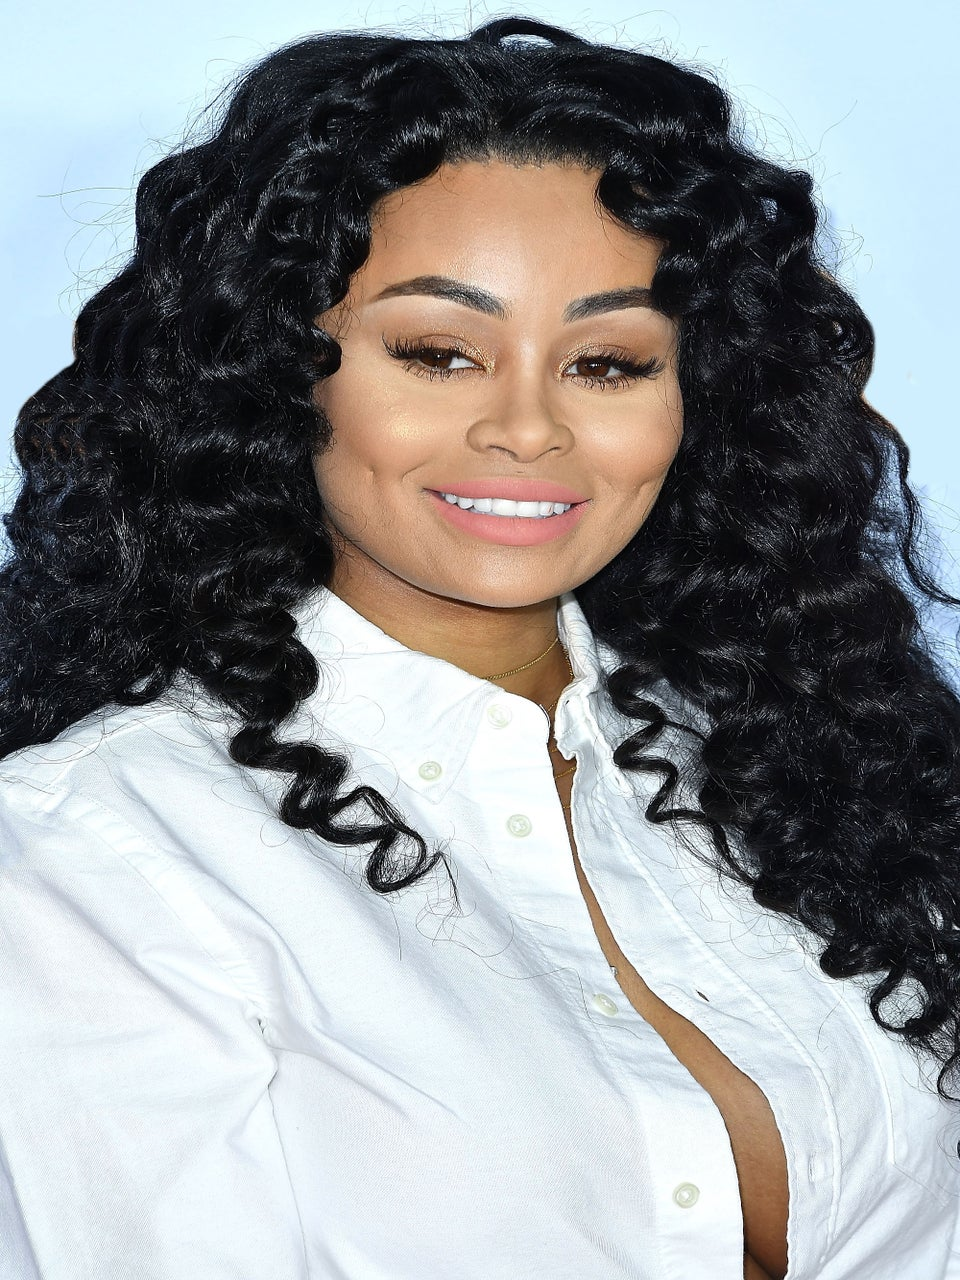 Blac Chyna Just Dragged Tyga On Snapchat For Being Broke And Allegedly Not Paying Child Support